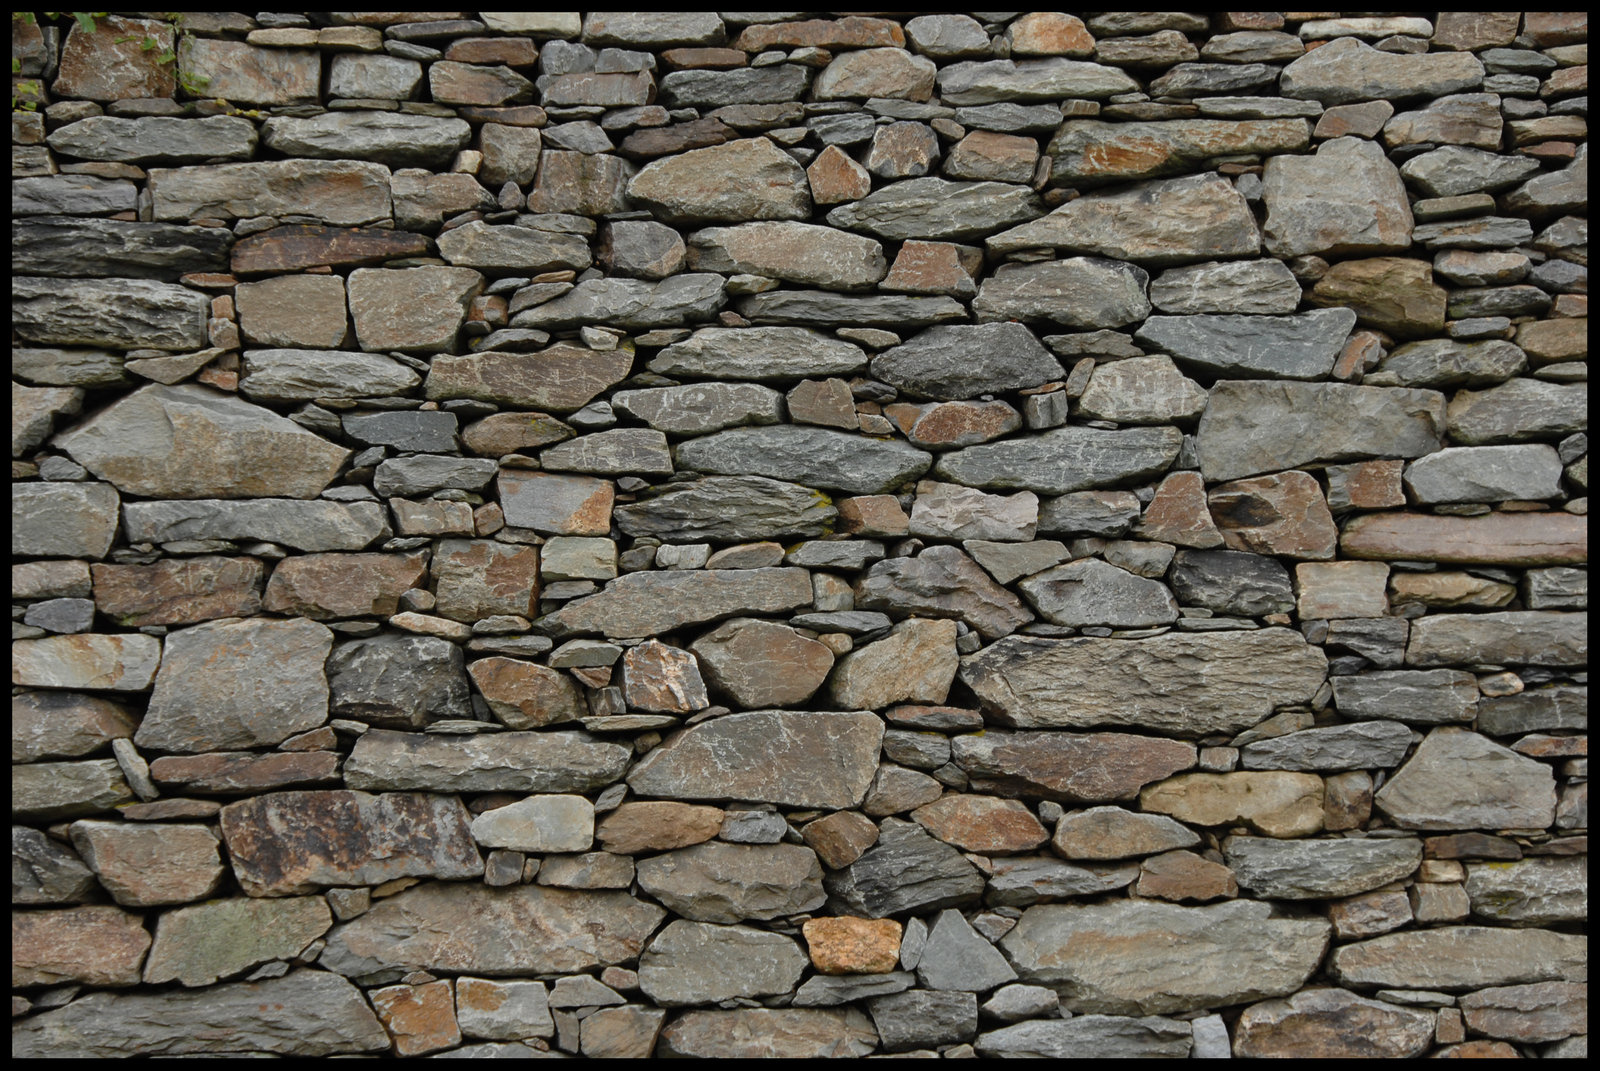 Wallpaper stone wall wallpapersafari for Wallpaper images for house walls